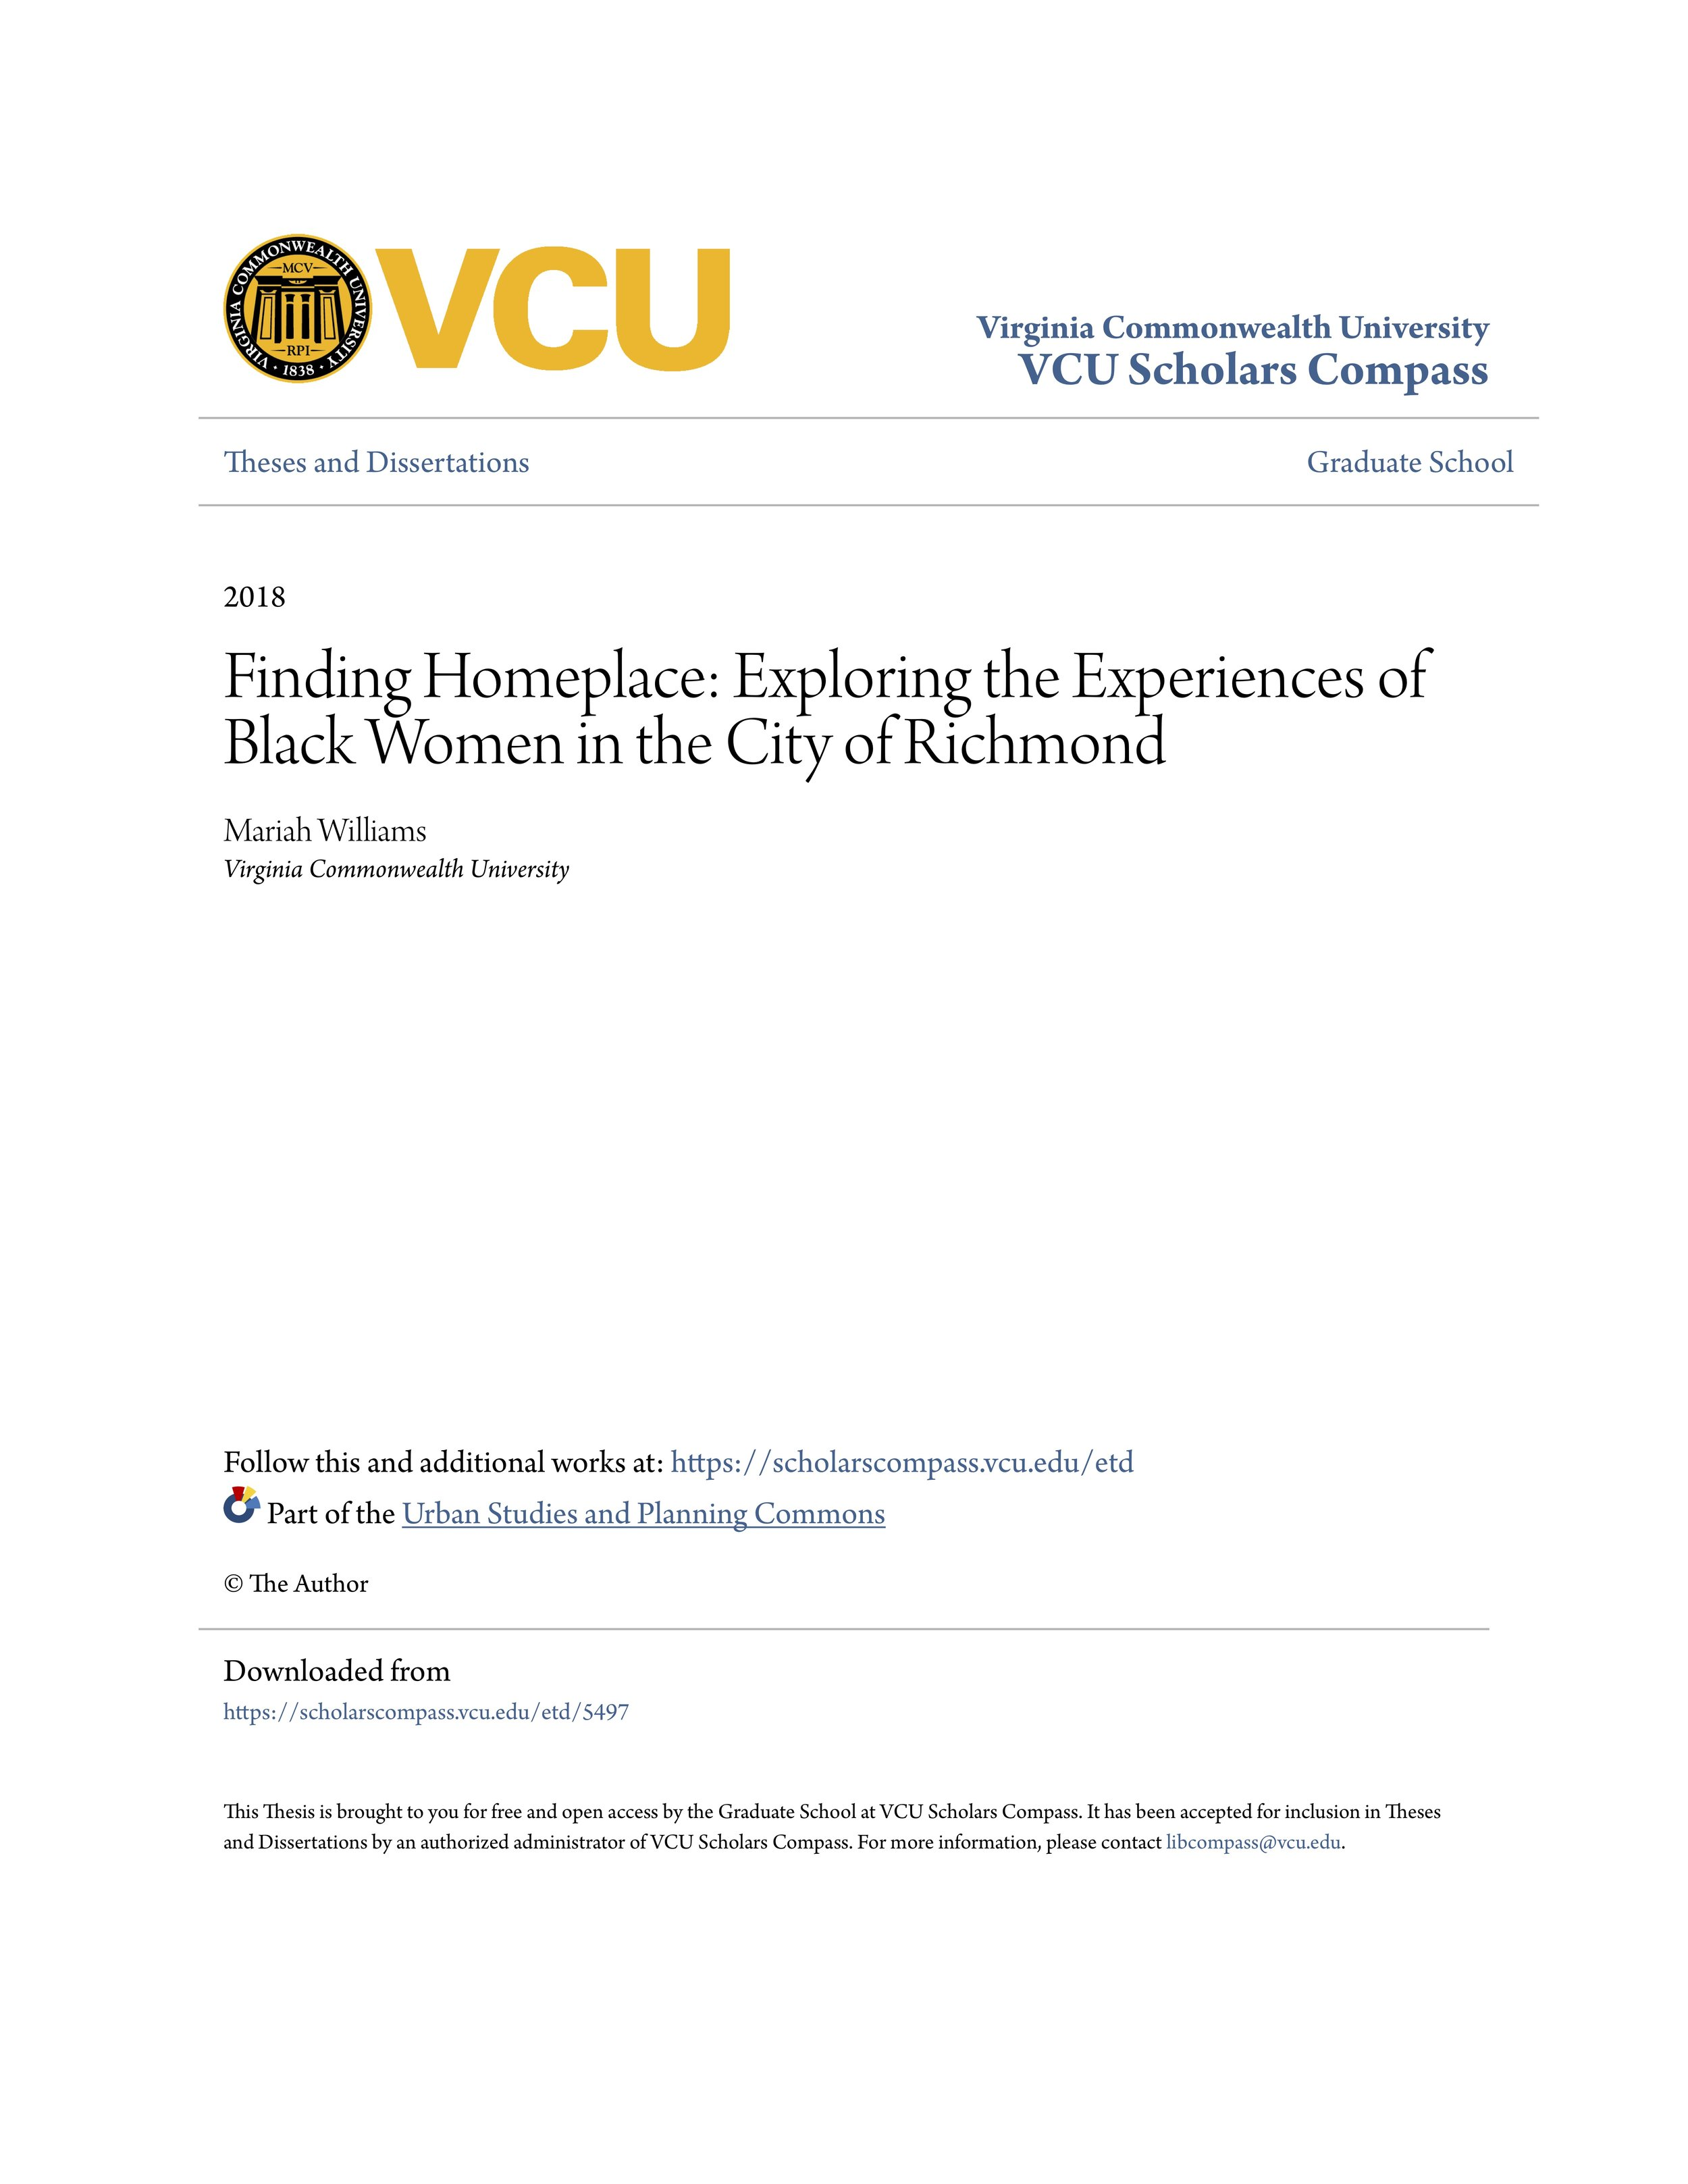 Finding Homeplace_ Exploring the Experiences of Black Women in th (dragged).jpg